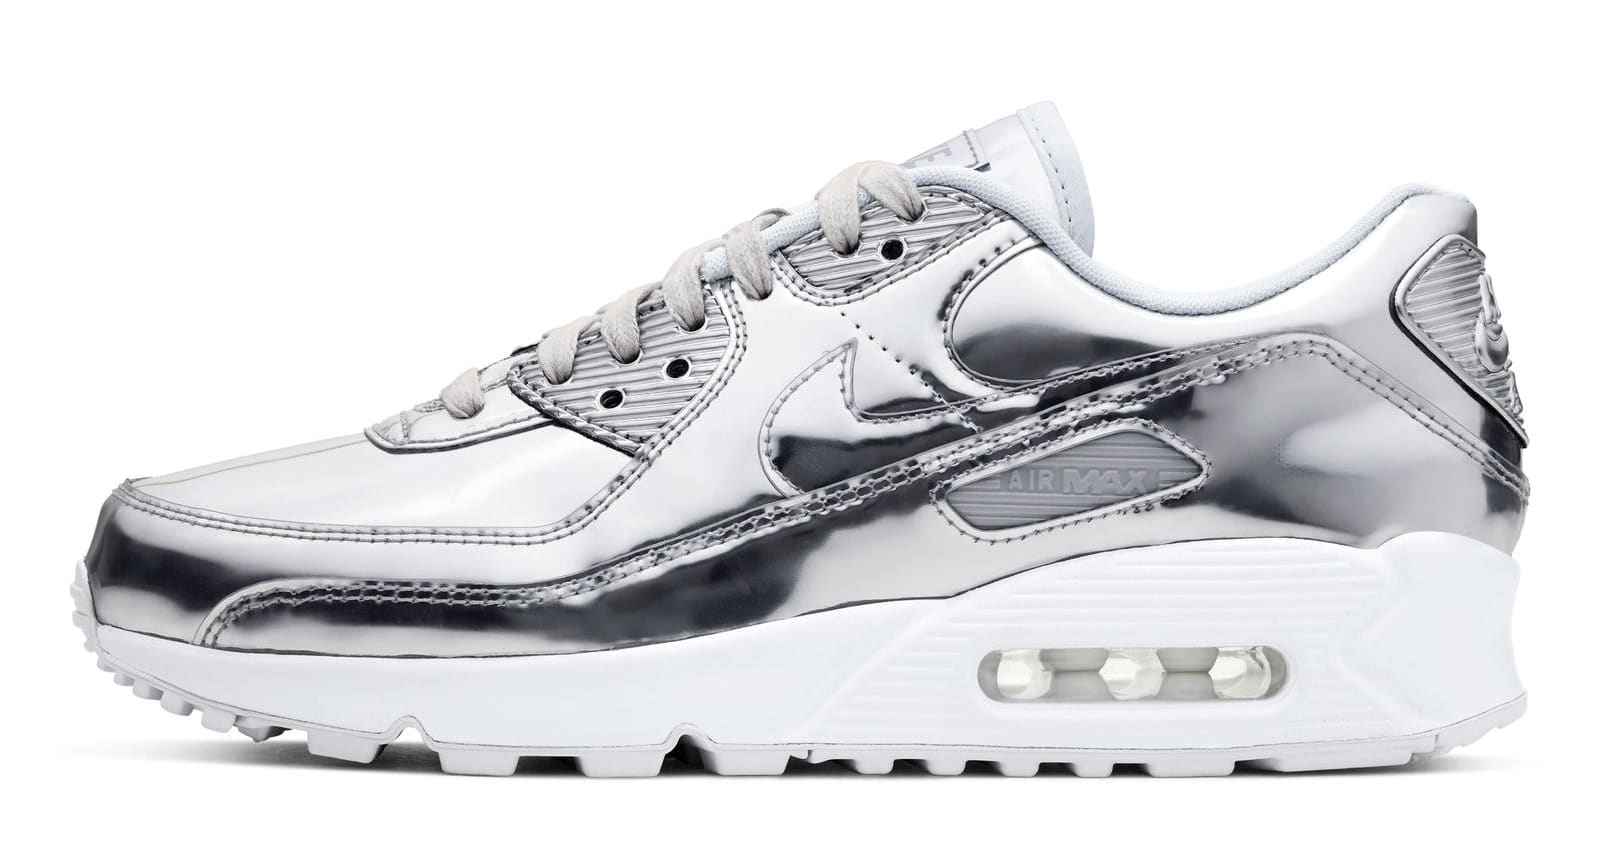 Nike Air Max 90 Silver 'Metallic Pack'